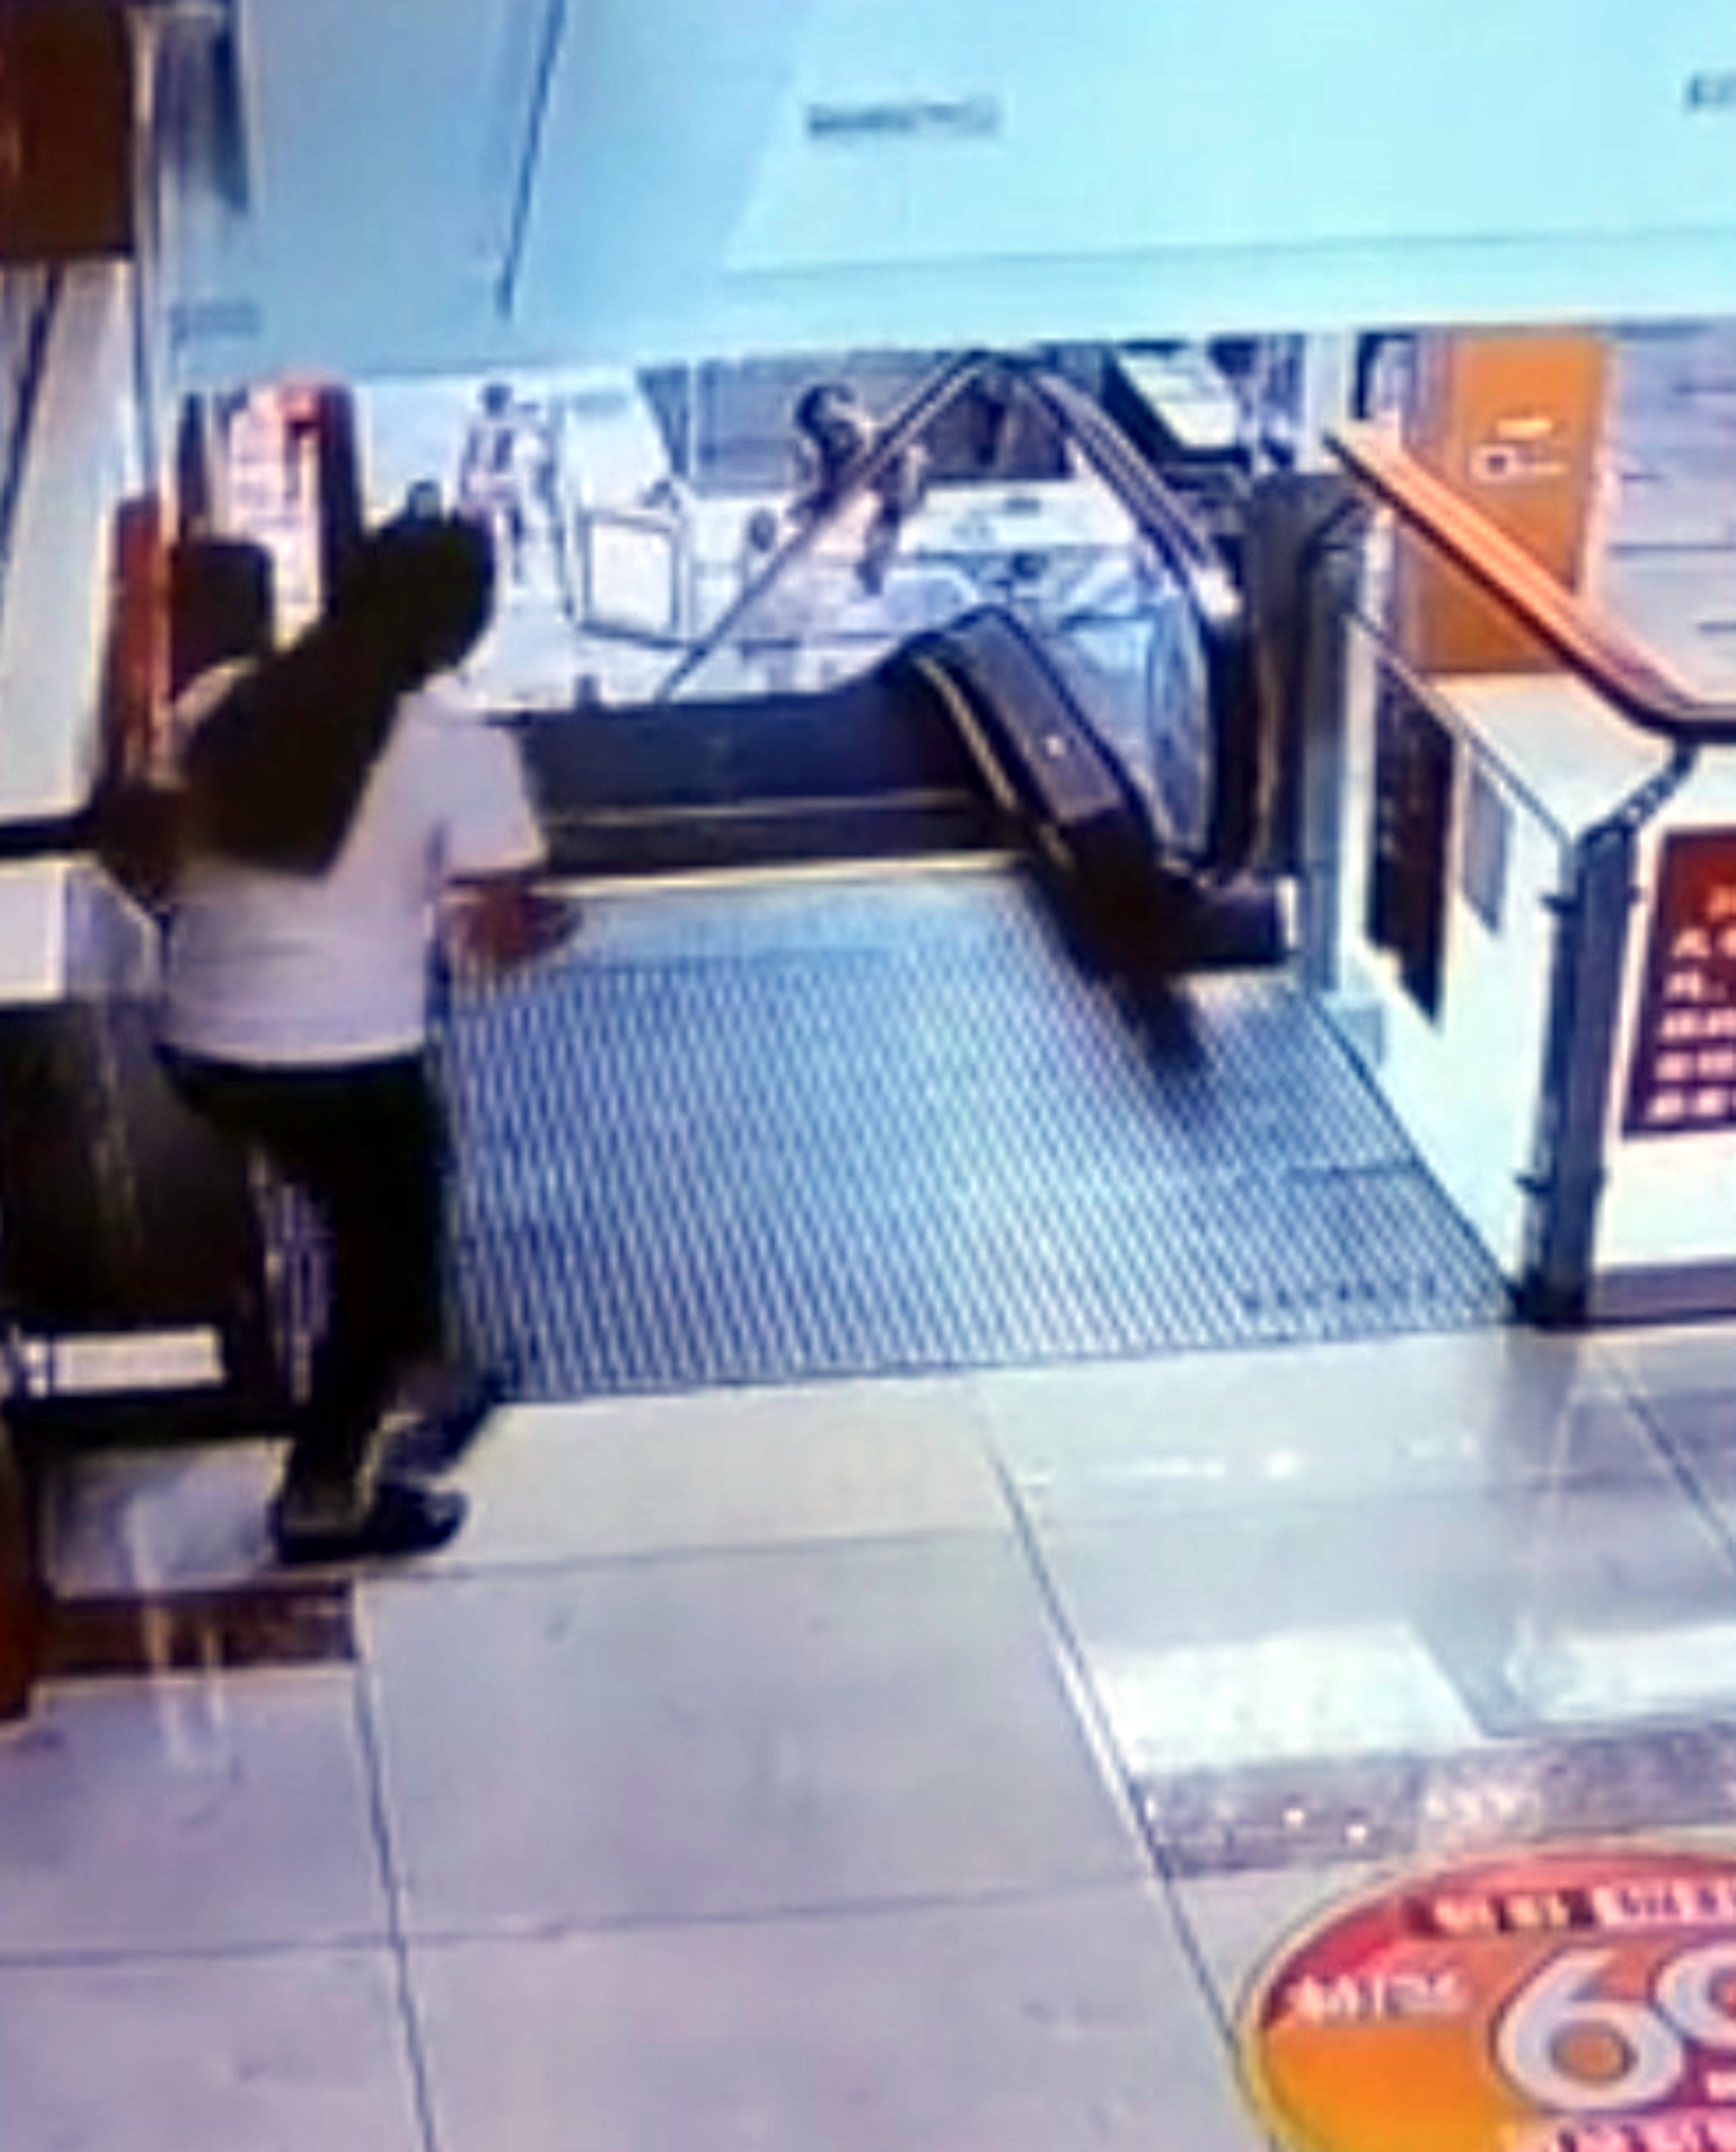 Toddler saved from escalator